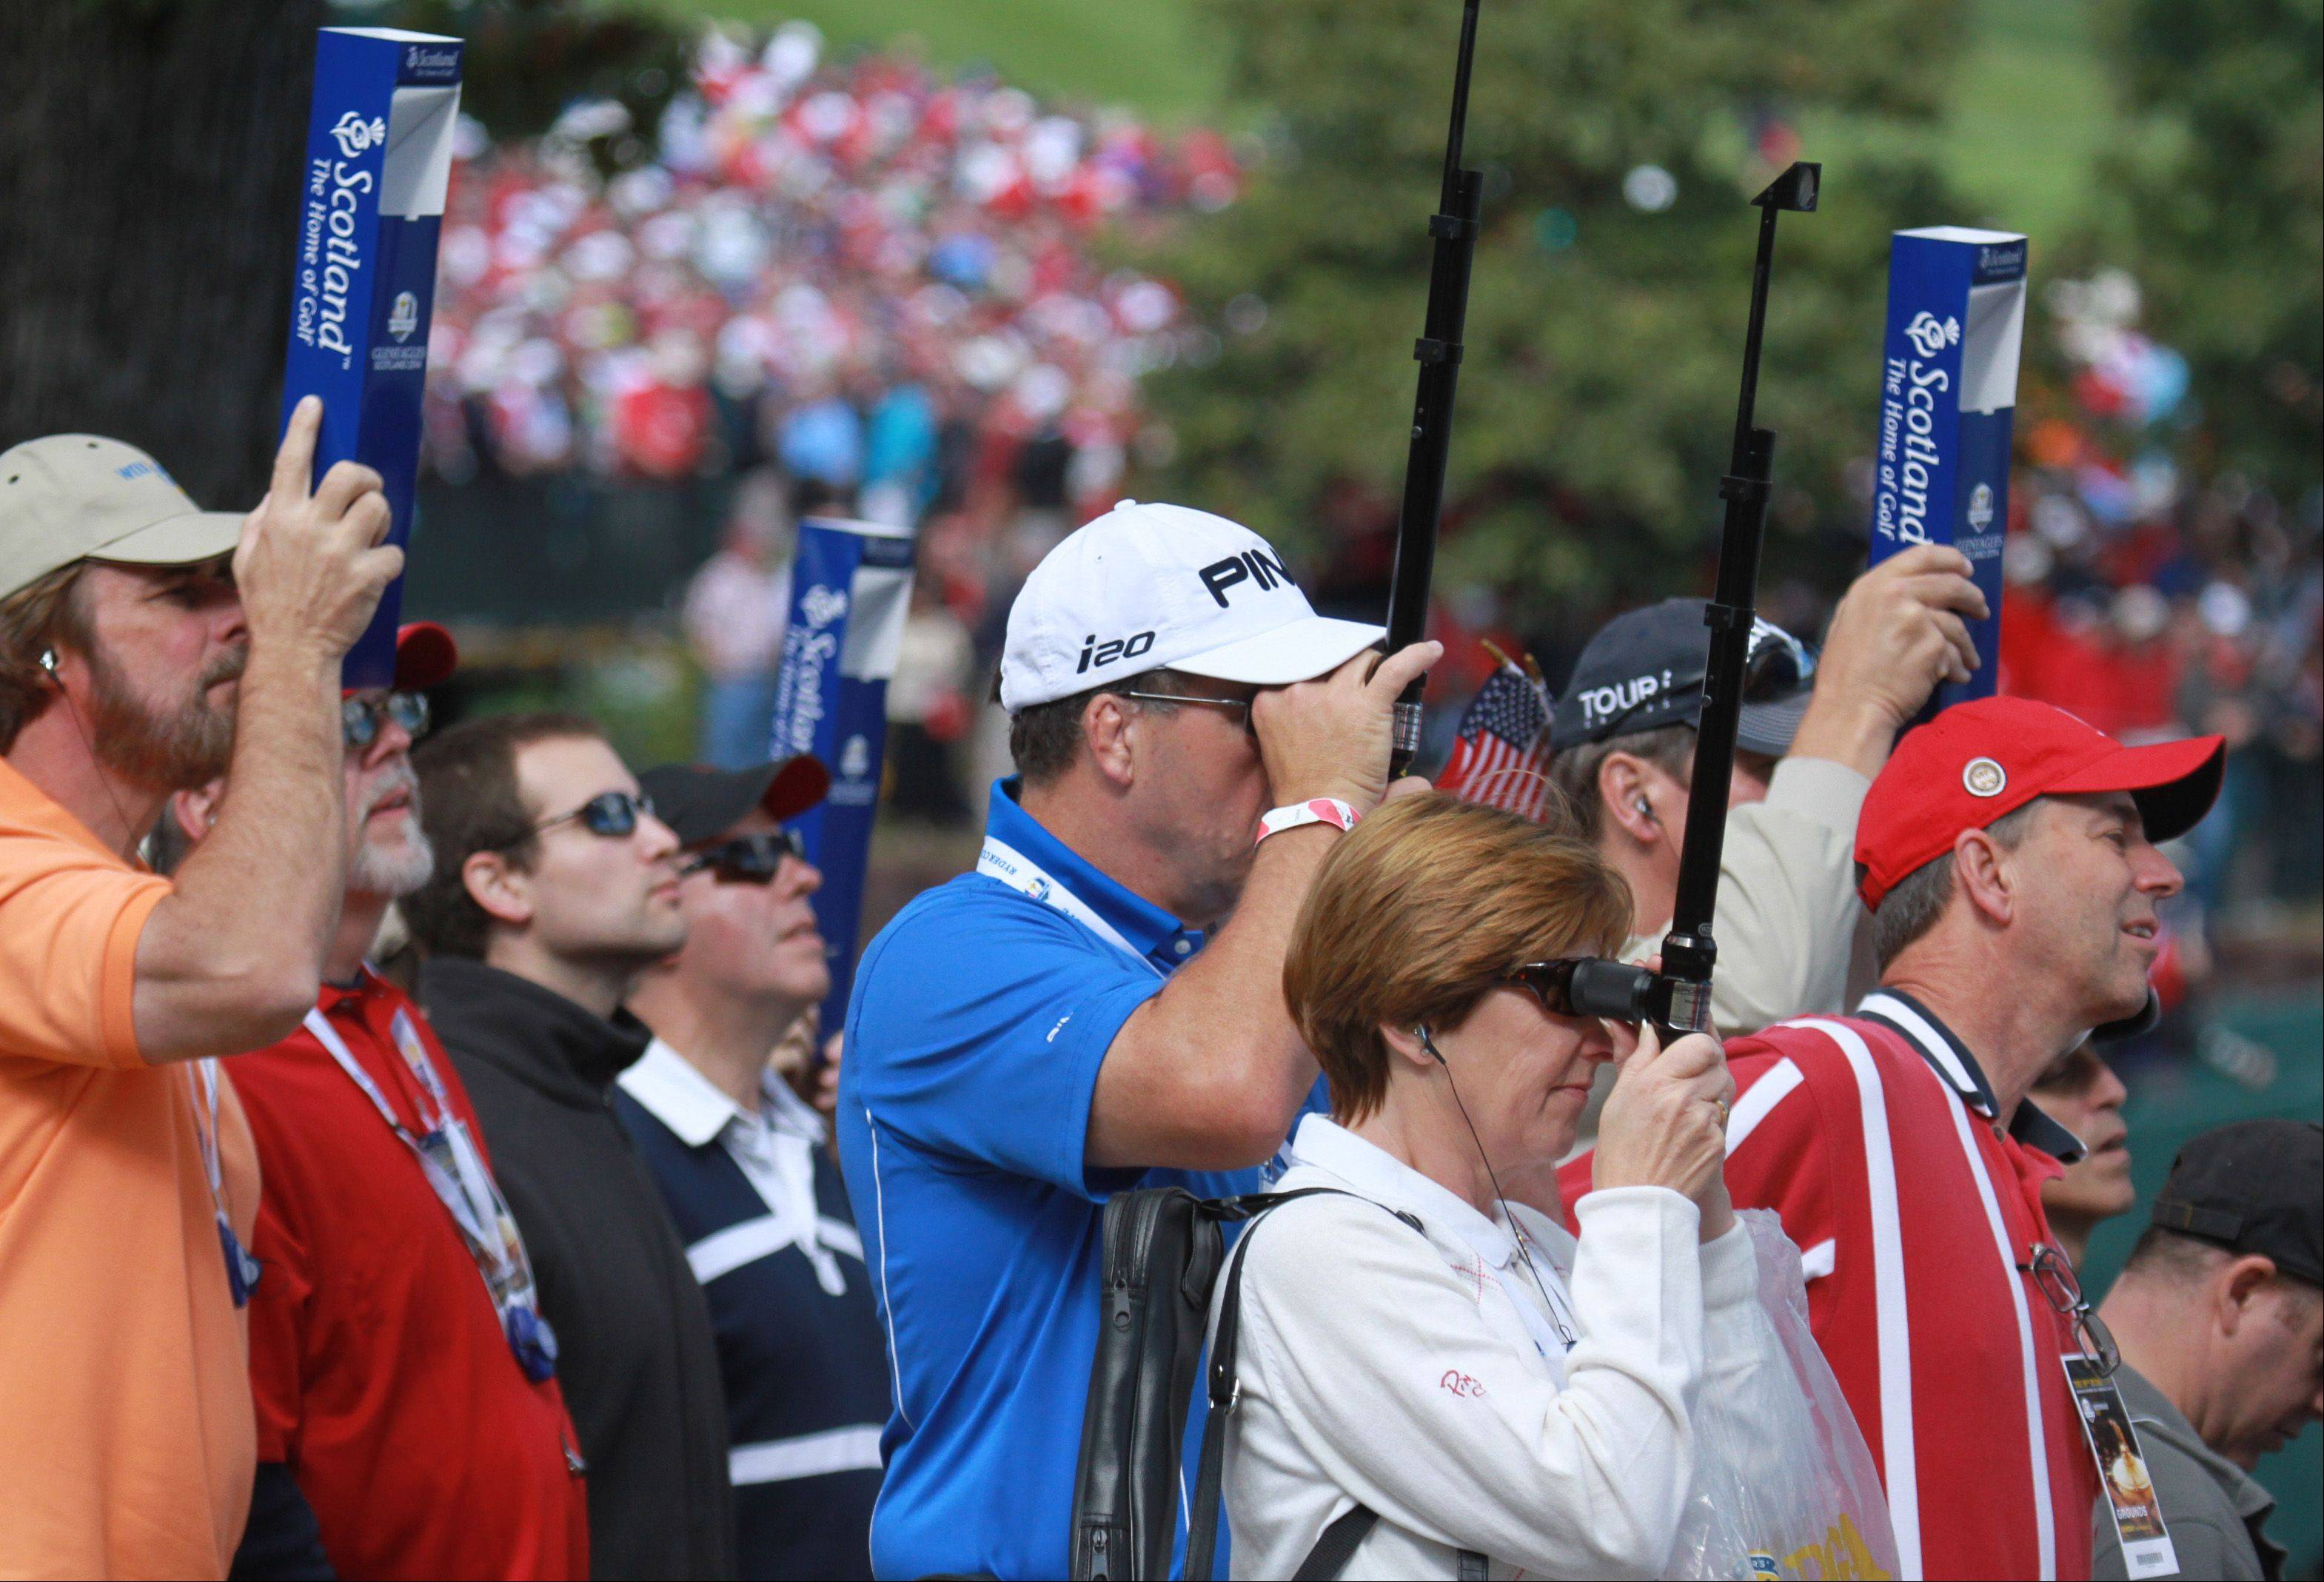 Fans found all sorts of ways to get a better view of the action Sunday at Medinah.